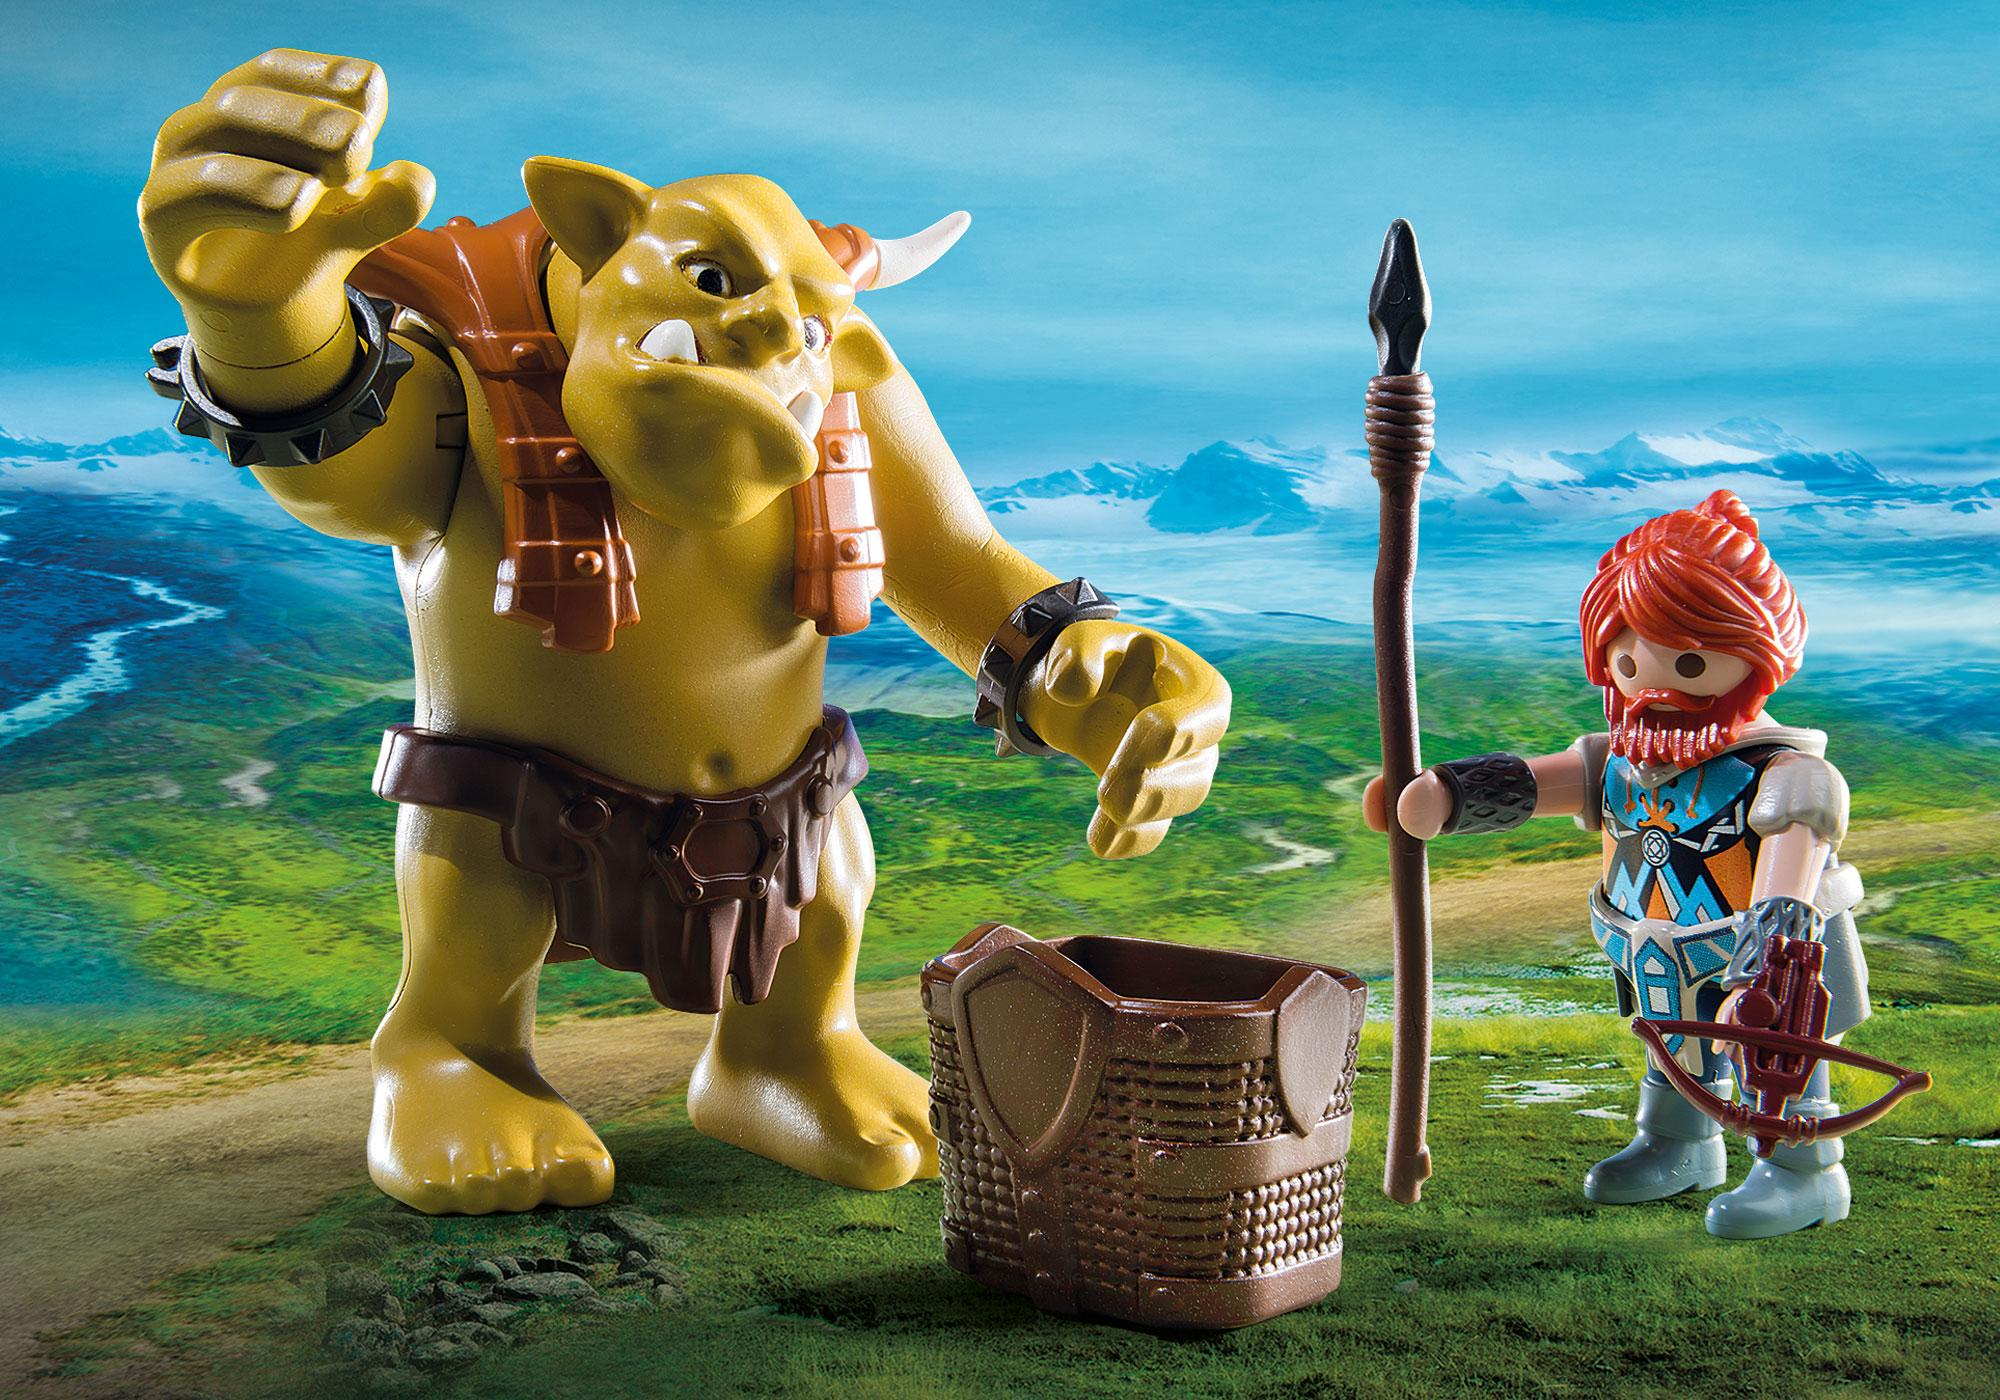 http://media.playmobil.com/i/playmobil/9343_product_extra1/Guerriero con Troll Gigante